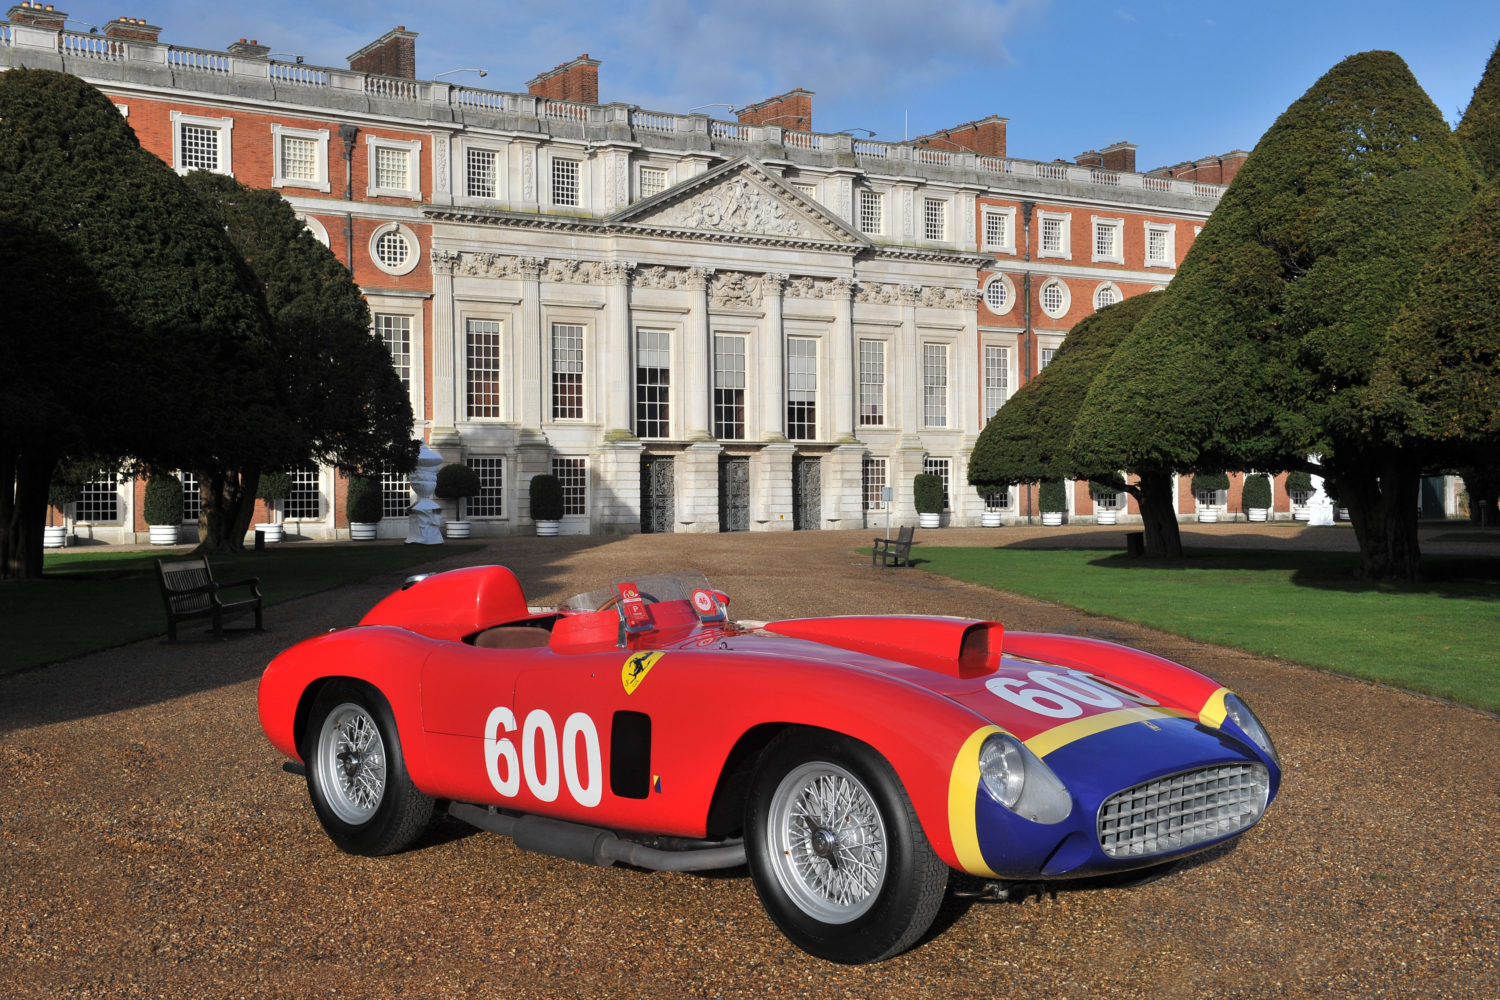 Hampton Court Palace Venue and Dates Announced for the 2014 Concours of Elegance